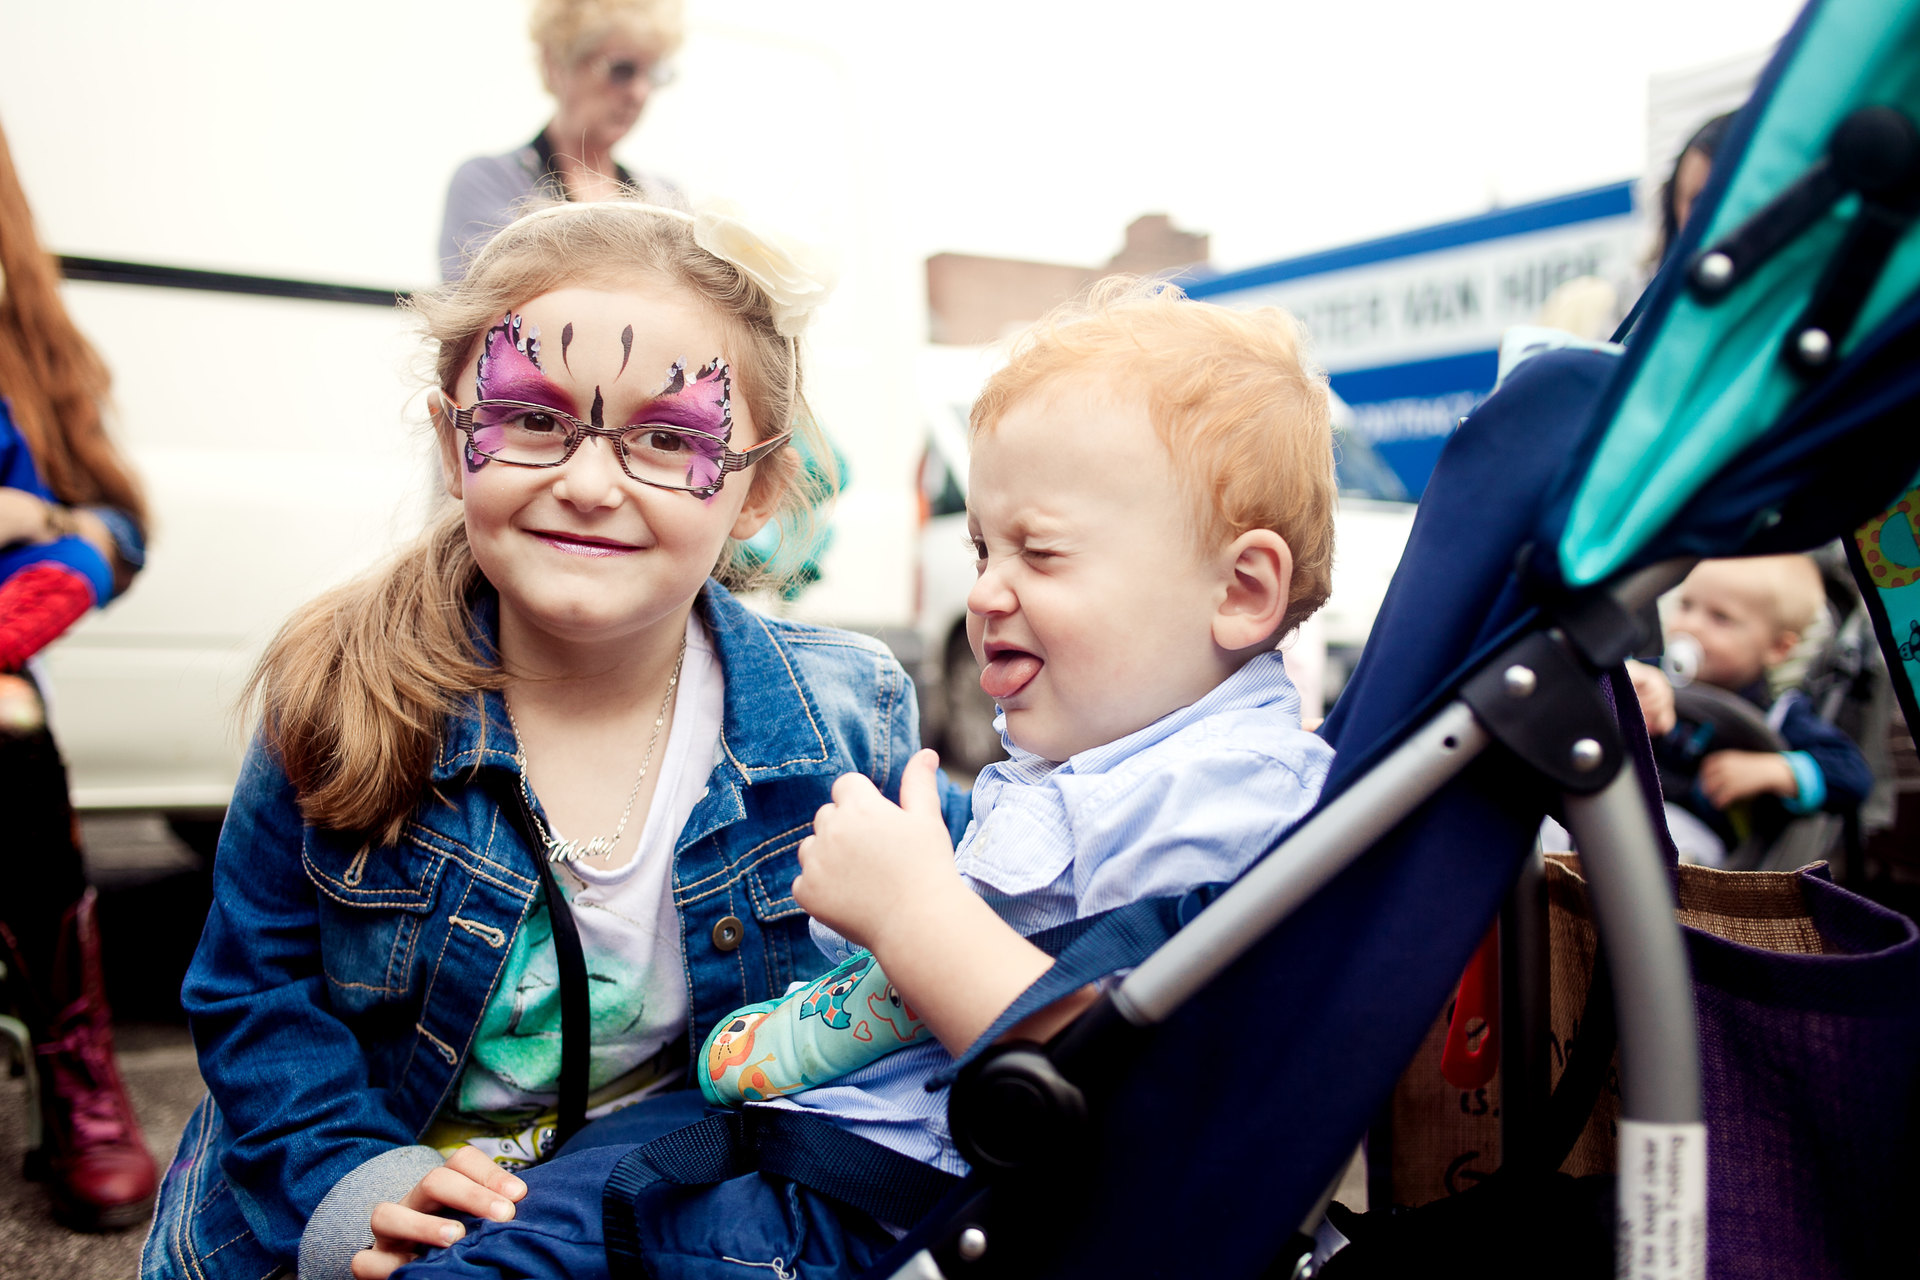 Manchester markets face painting